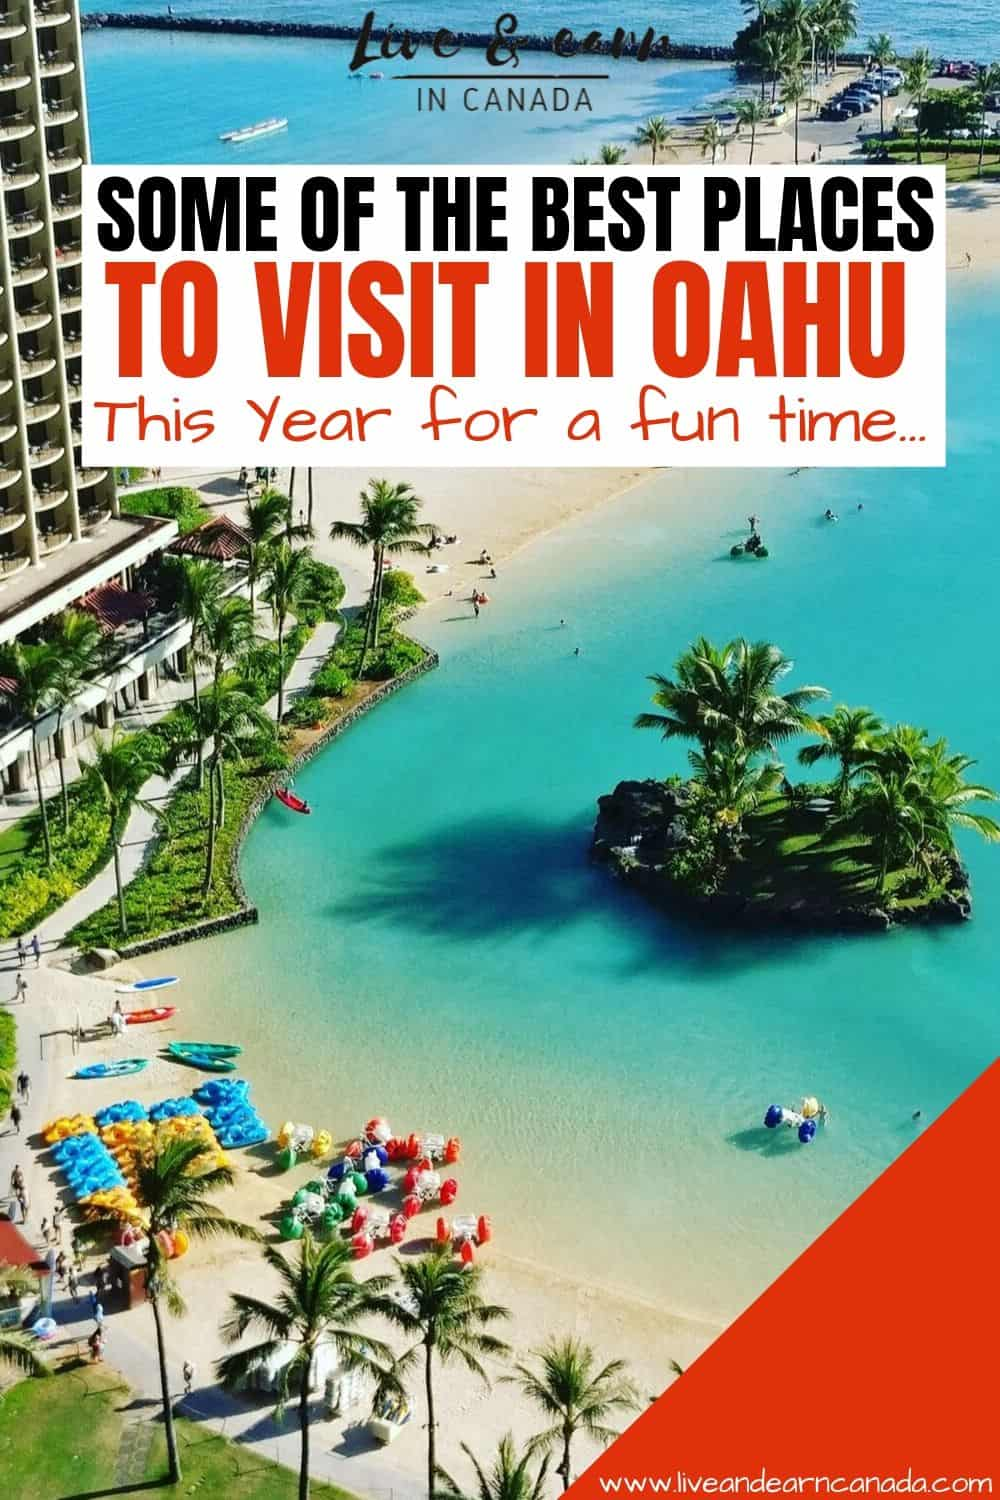 Are you looking for the best places to visit in oahu hawaii? Or things to do in oahu hawaii? Here is our top guide for activities to do in Oahu, the best food in Oahu and all the attractions! Find our full guide included here #Hawaii #Oahu #vacationinhawaii #beachtravel #traveltips